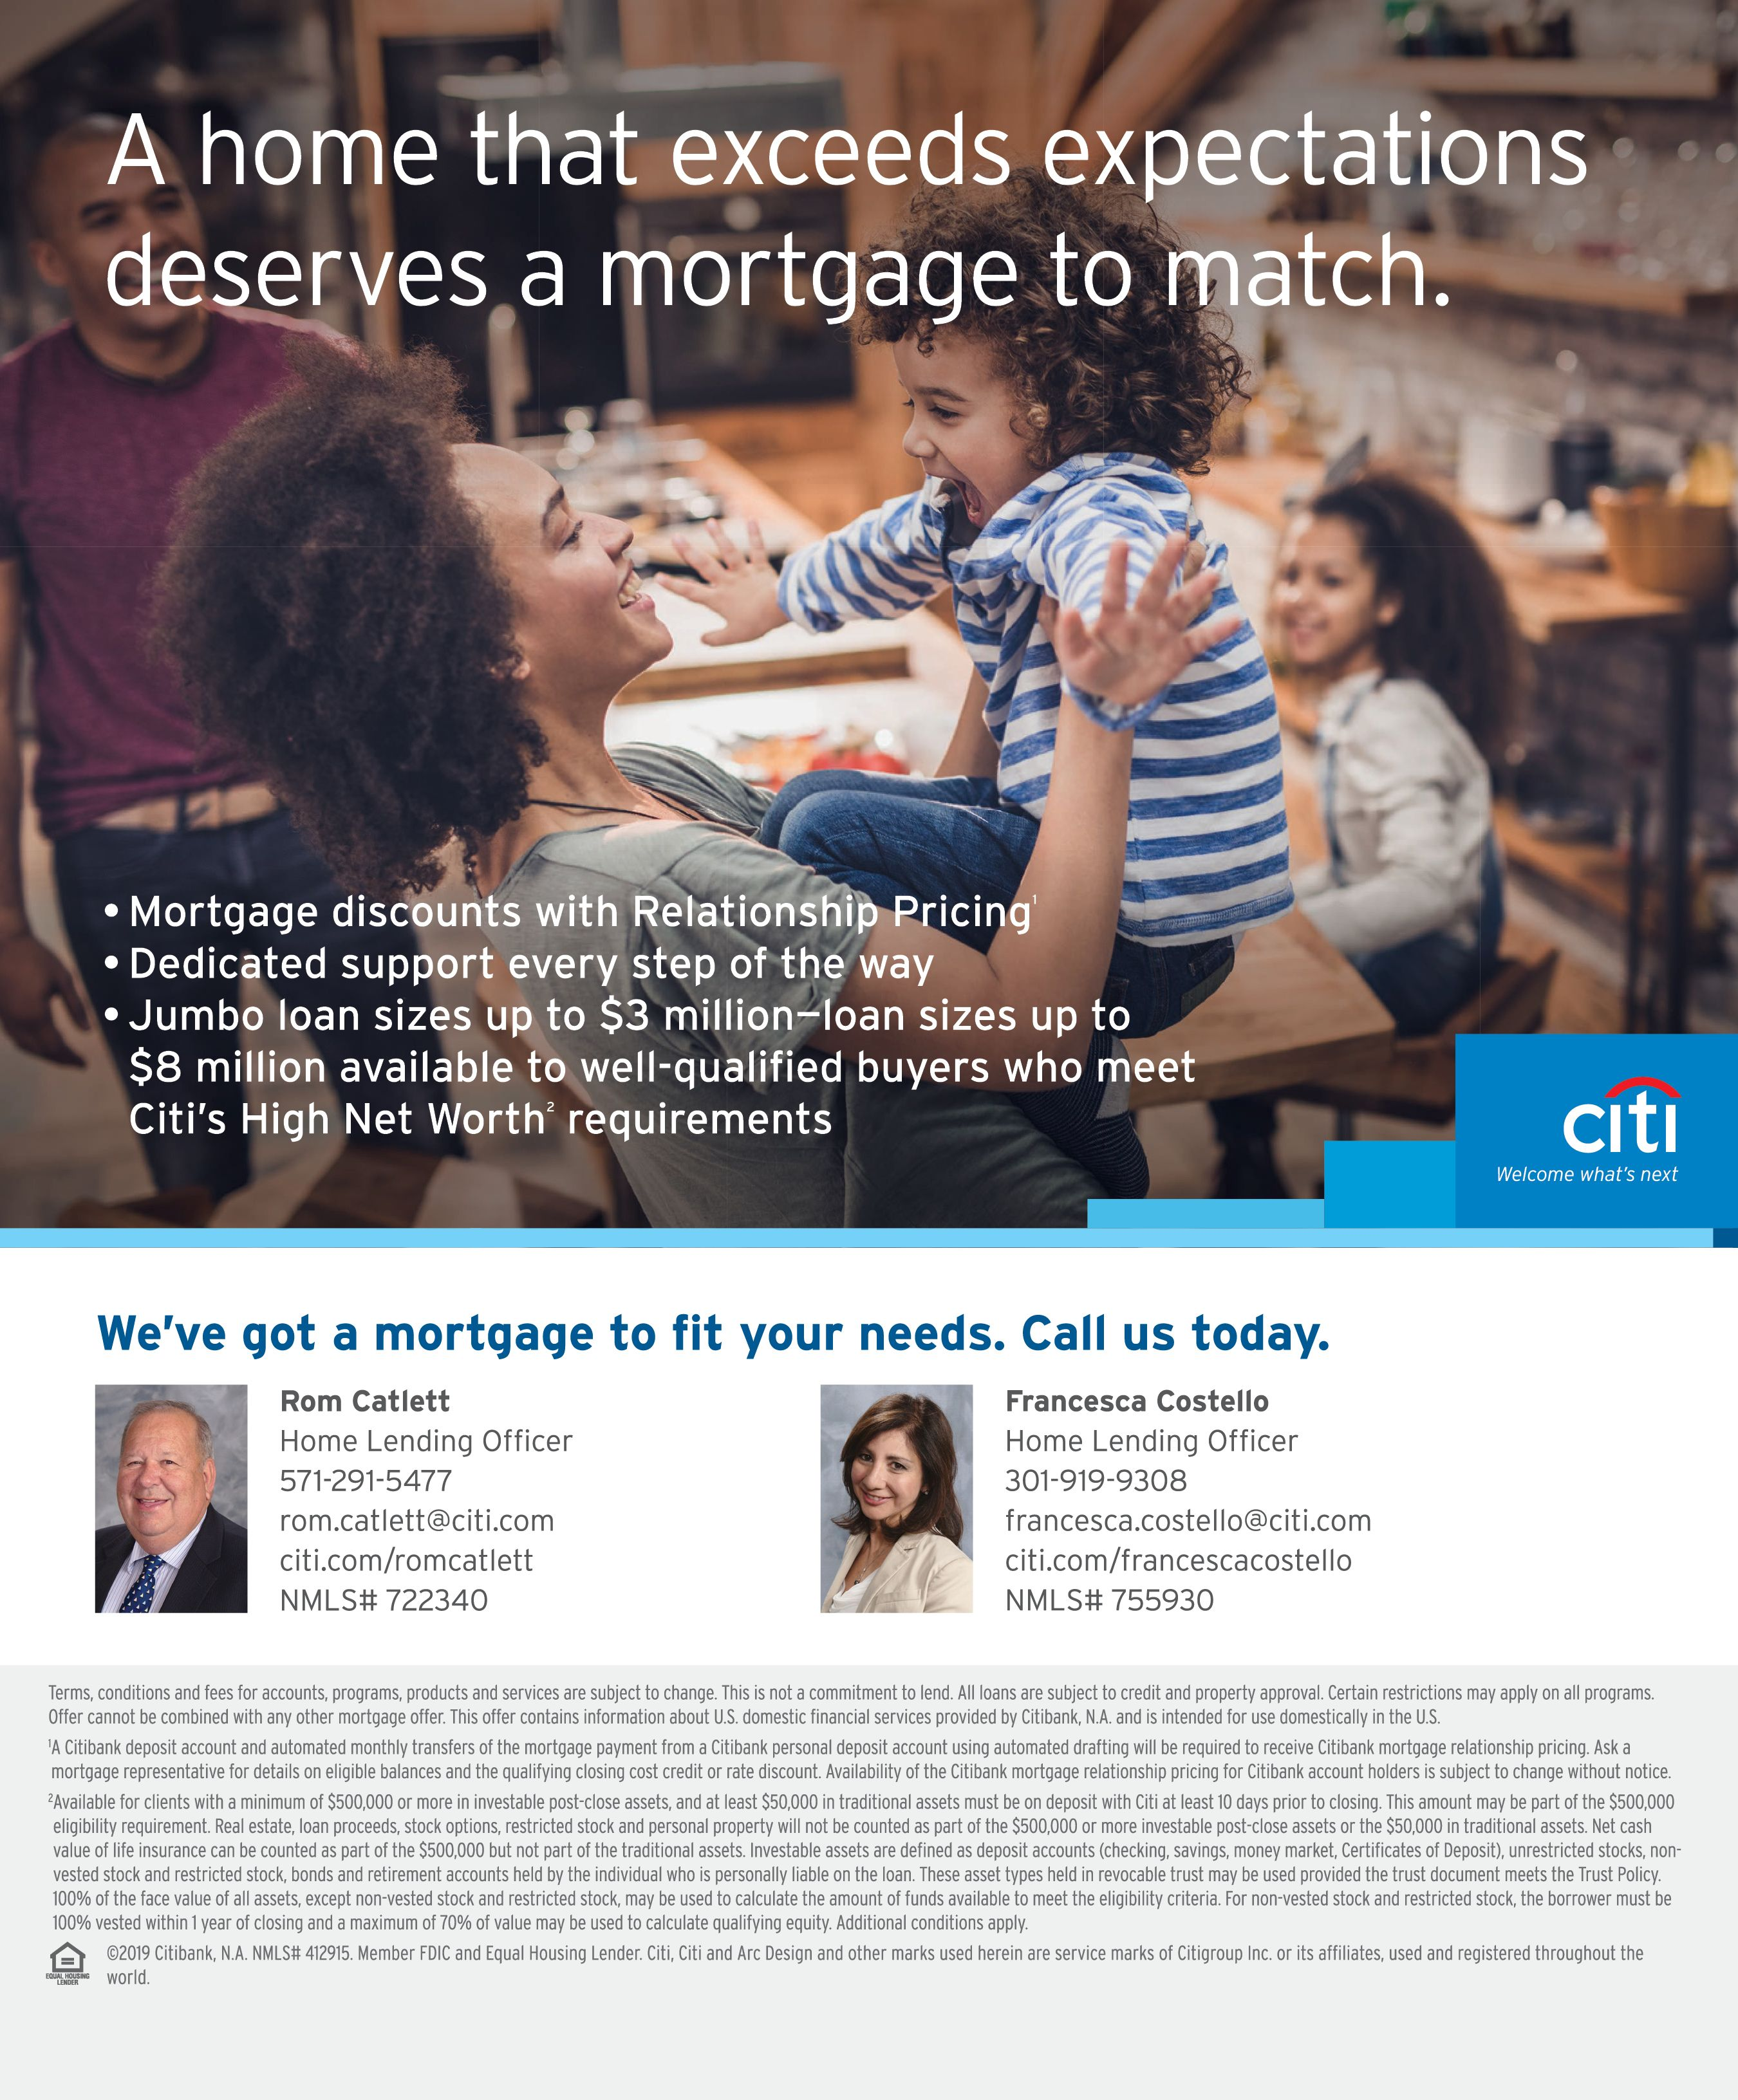 Citi Home Lending Personal Loans Online Banking Mortgage